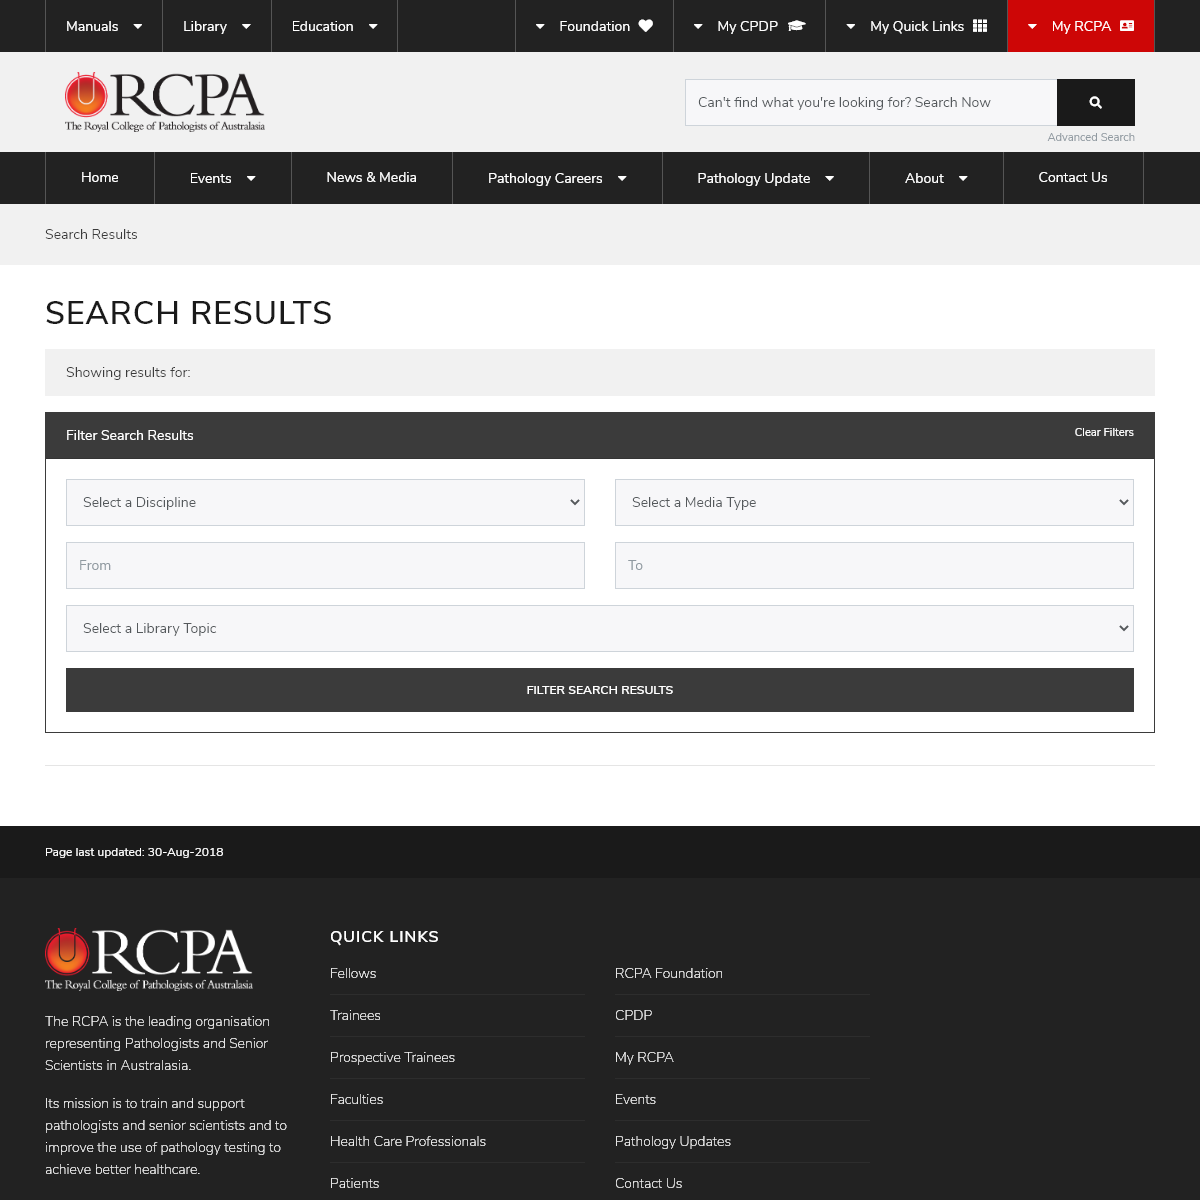 RCPA - Search Results